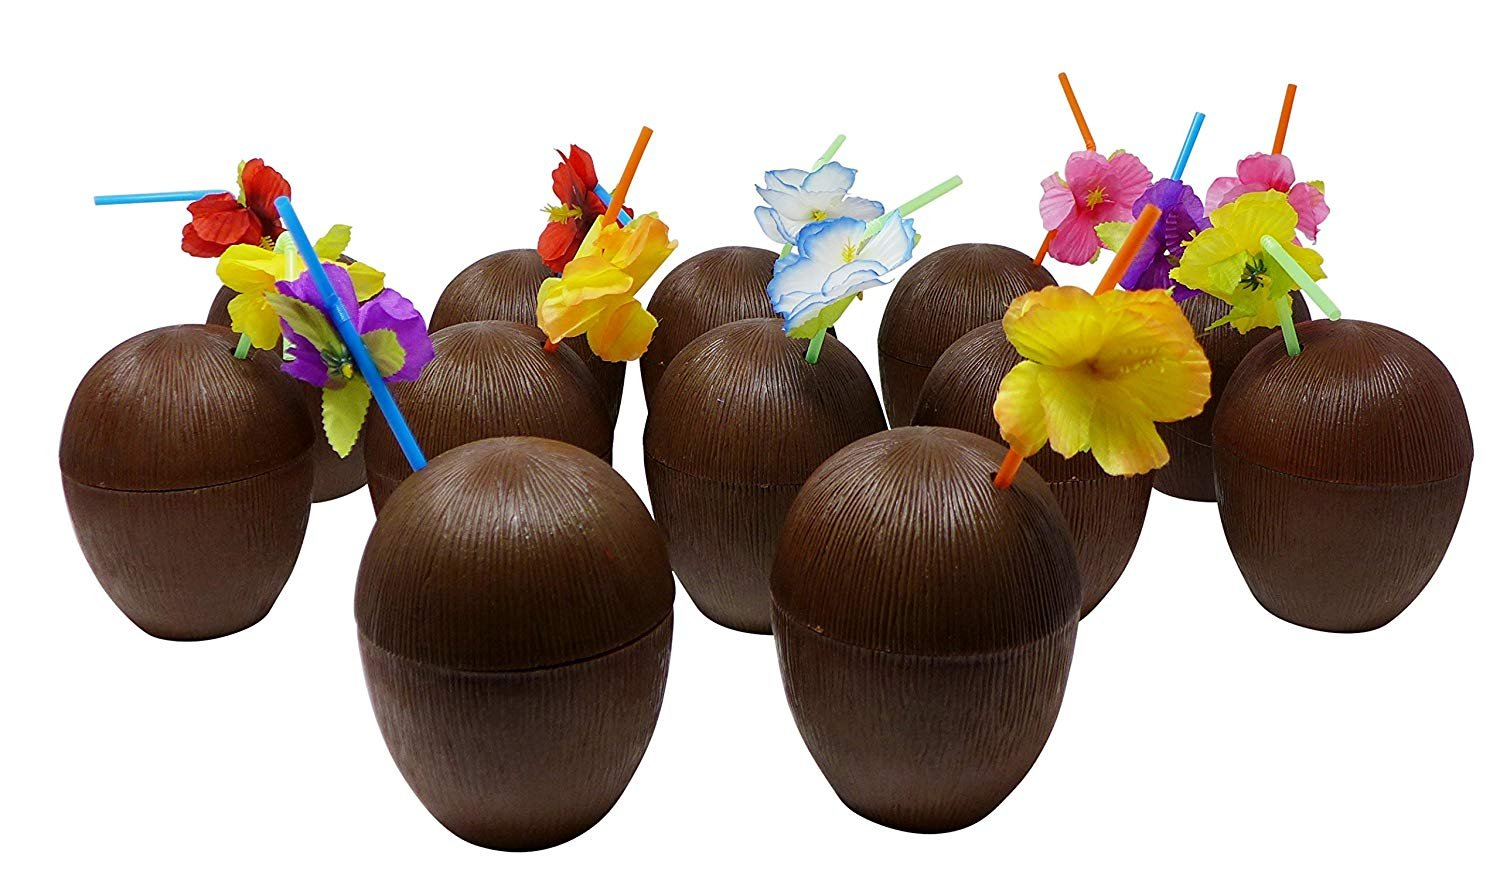 24-Pack Coconut Sipper Cup with Straws (Capacity - 16oz) Luau Party Drink Cups | Tropical Cocktail Cups